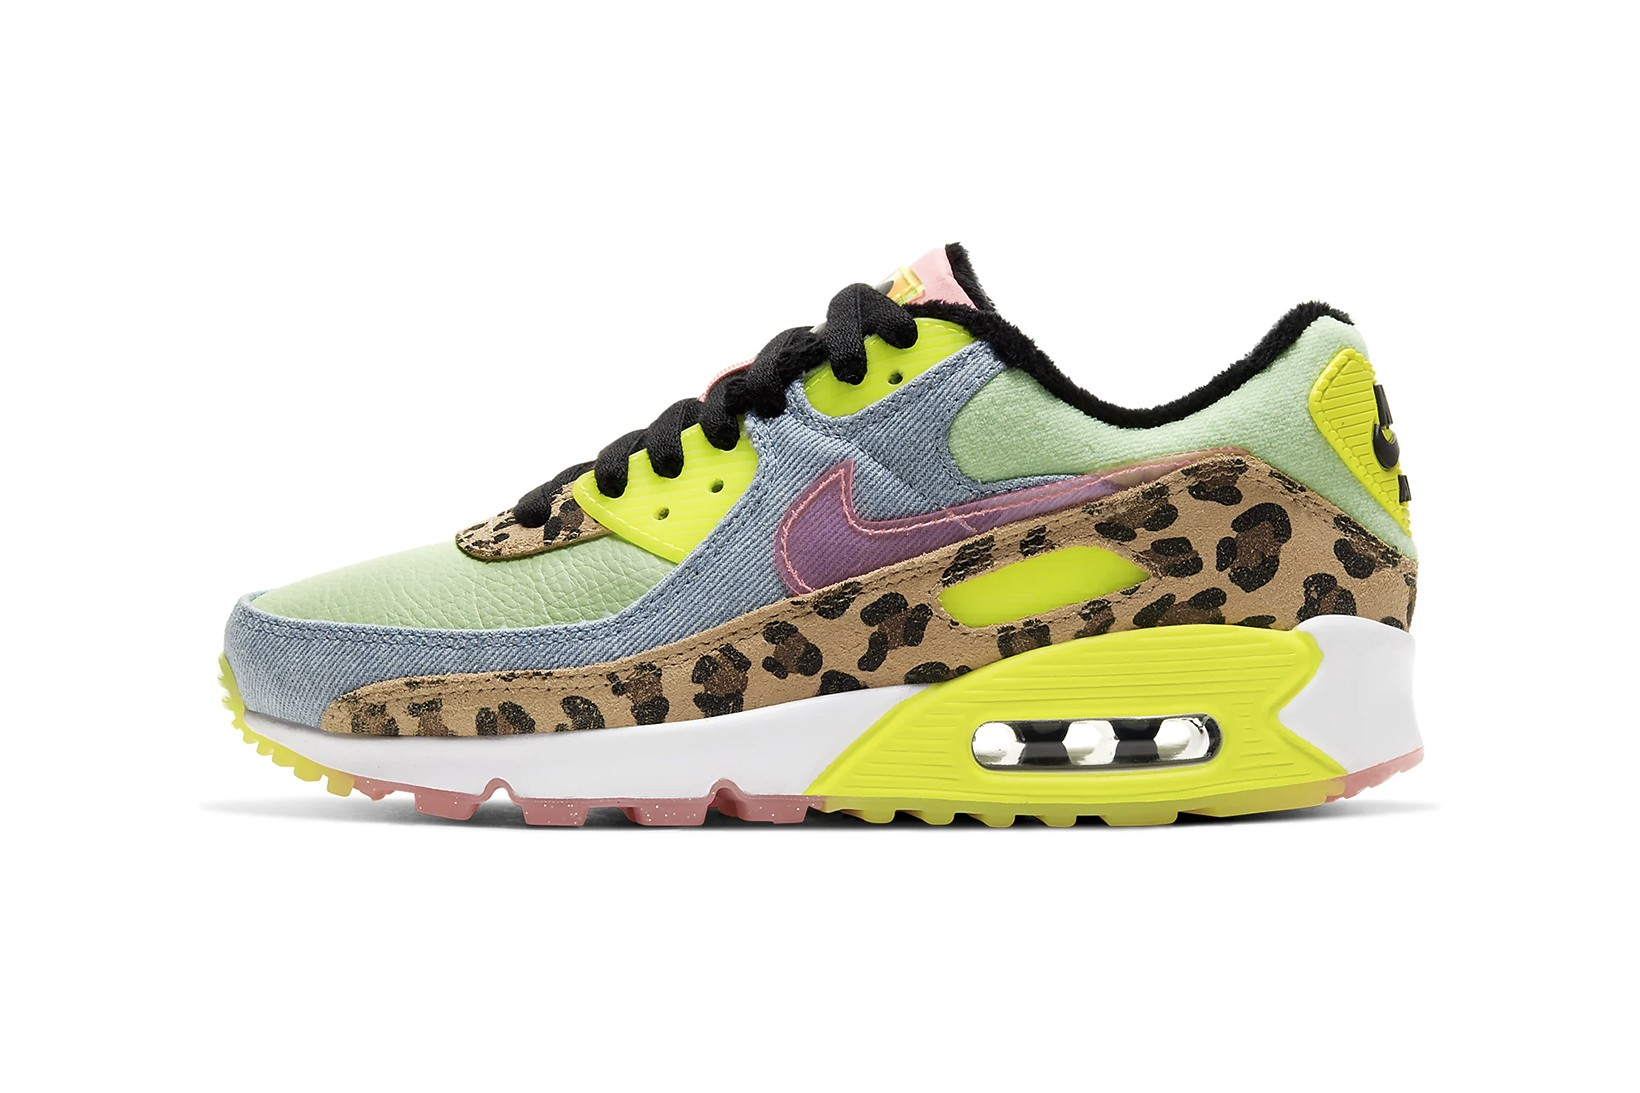 Nike Air Max 90 in Neon Green with